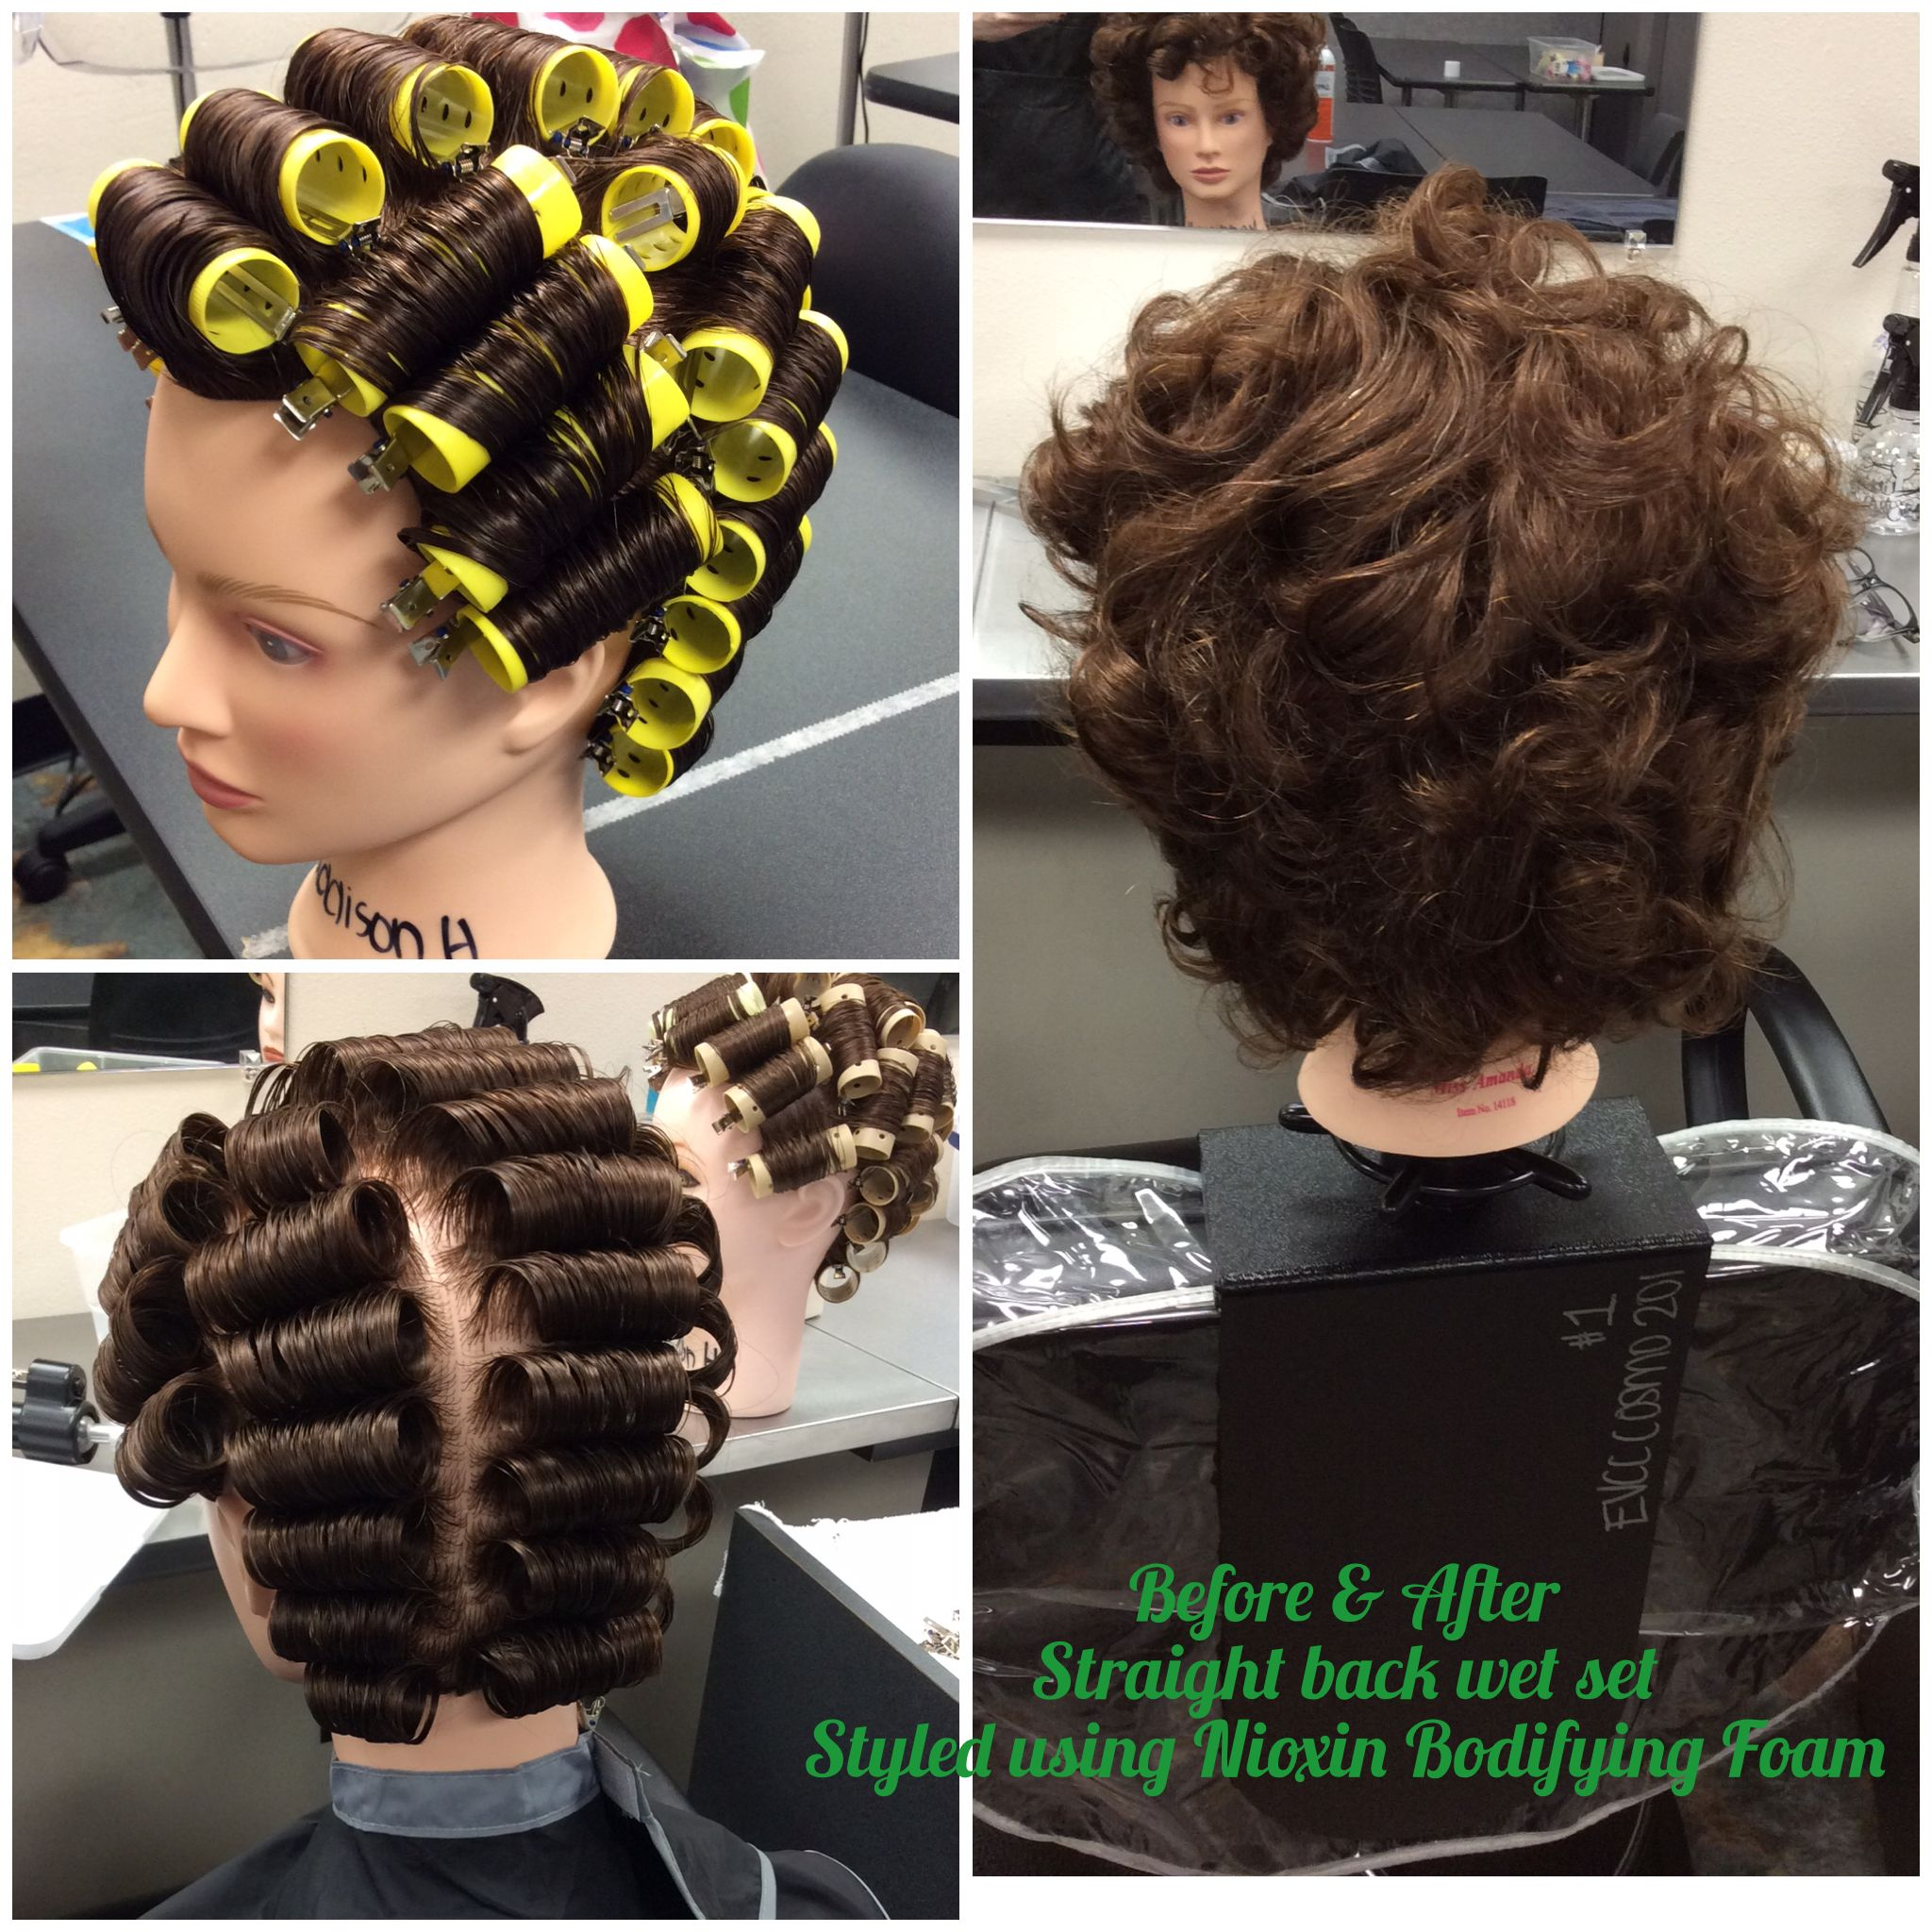 Straight Back Wet Set With Nioxin Bodifying Foam Roller Set Hairstyles Hair Setting Hair Rollers